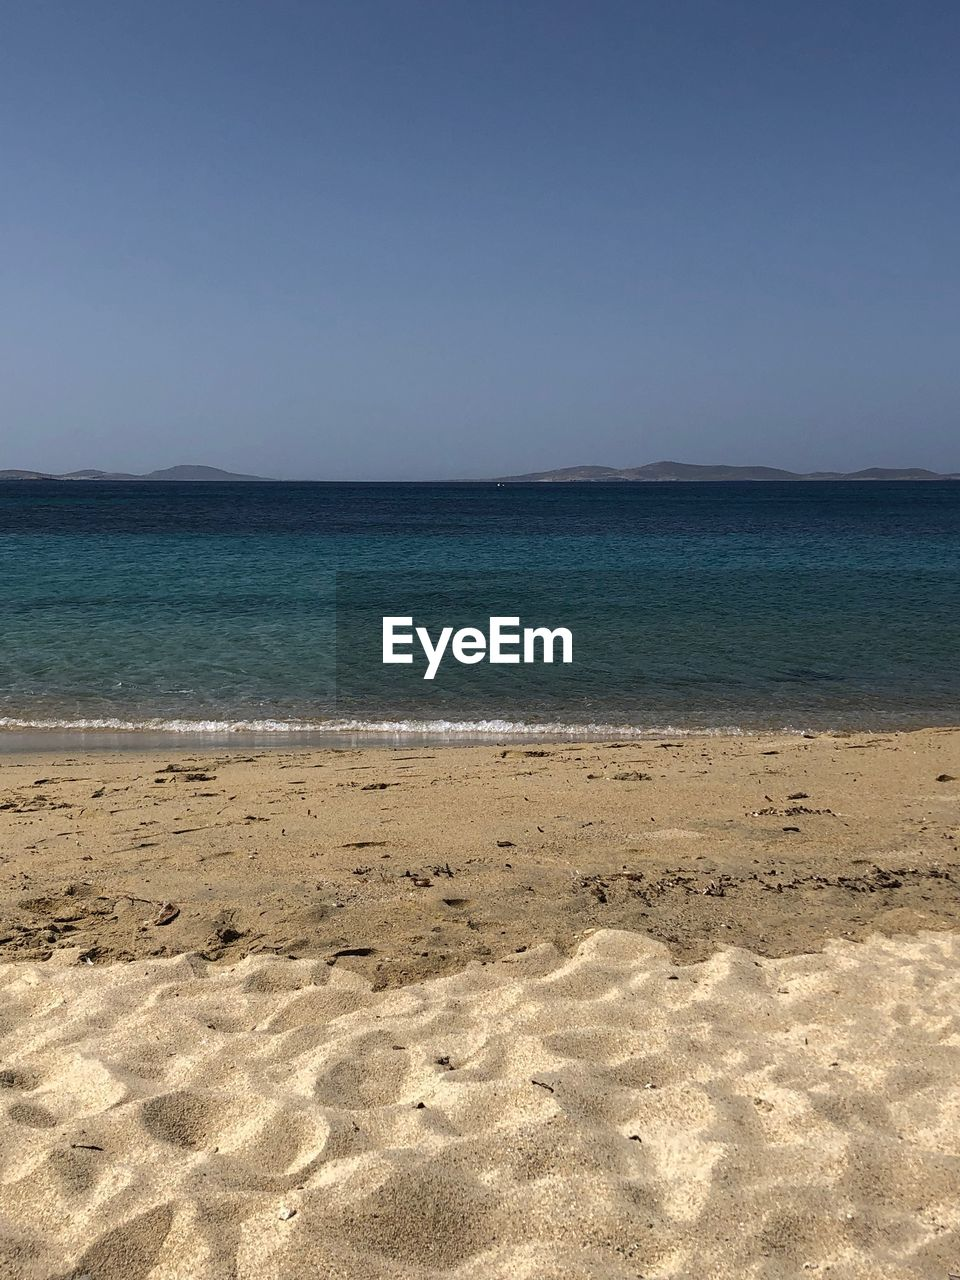 land, sea, beach, tranquility, sky, beauty in nature, scenics - nature, water, tranquil scene, sand, clear sky, nature, horizon, no people, horizon over water, blue, idyllic, day, non-urban scene, outdoors, purity